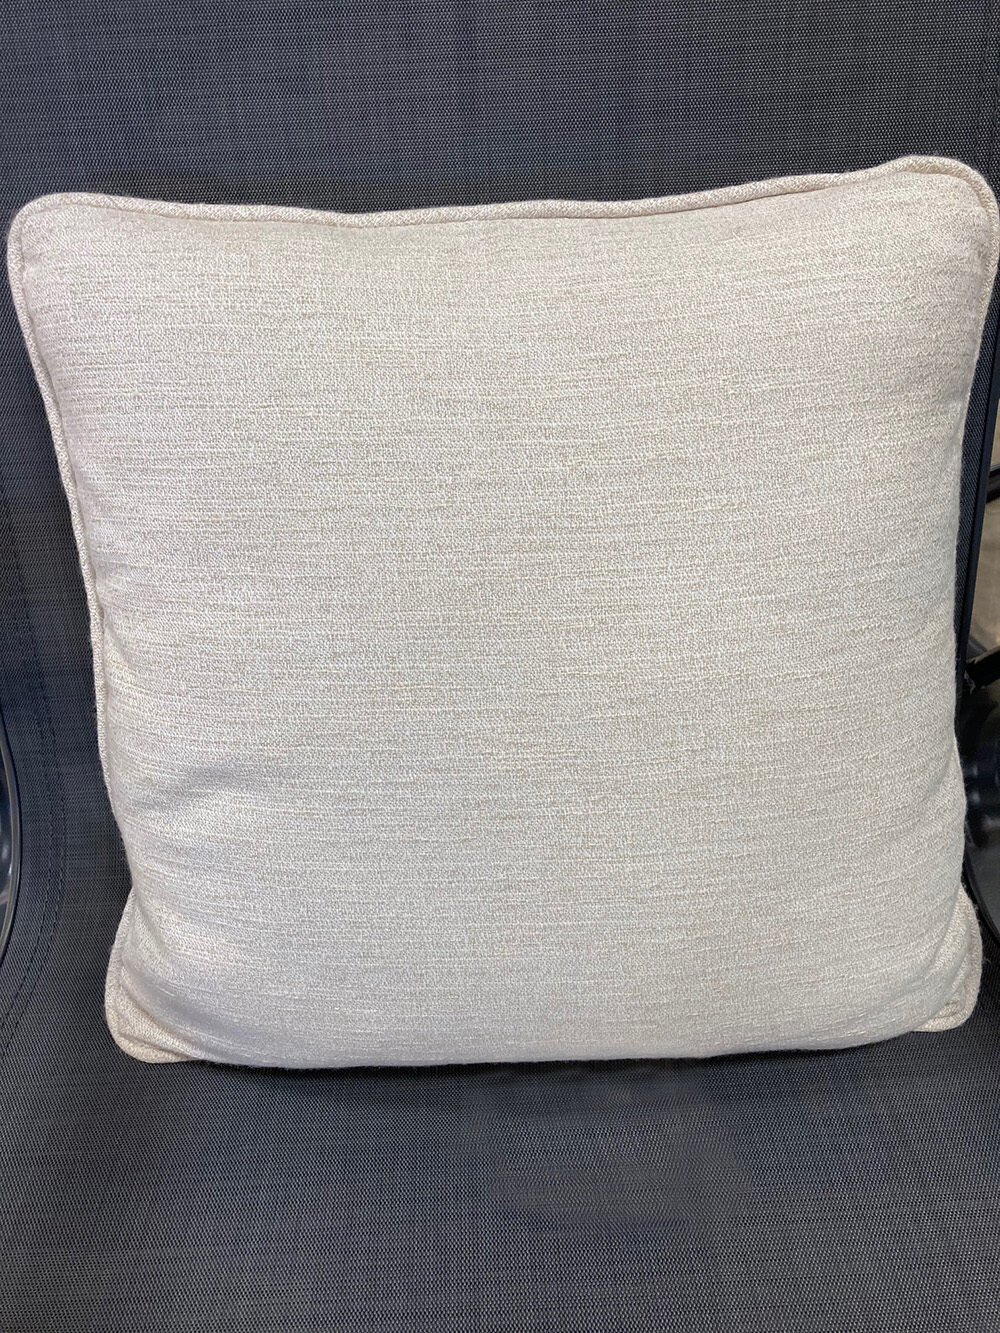 Pillow With 1/4